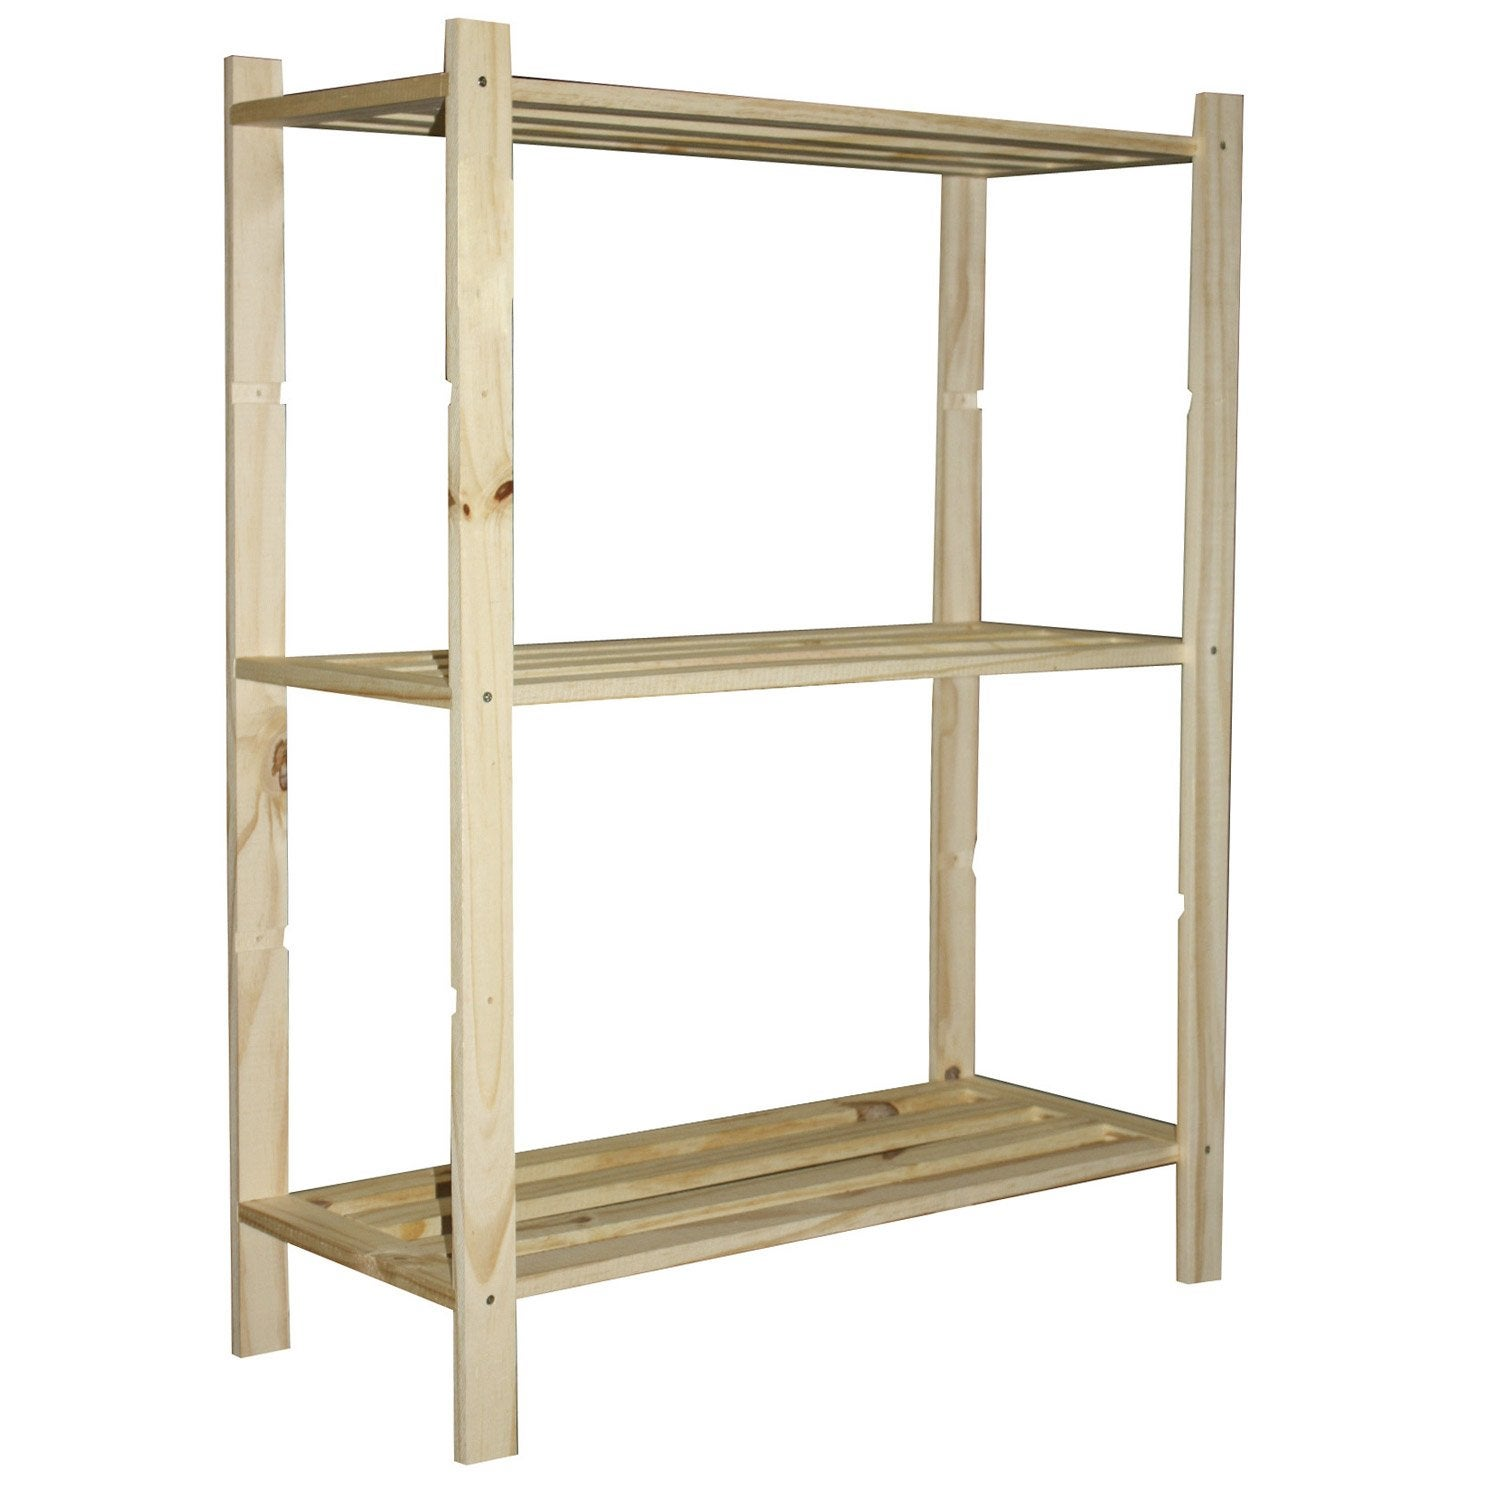 Etag re pin 3 tablettes x x cm leroy merlin - Leroy merlin etagere bois ...